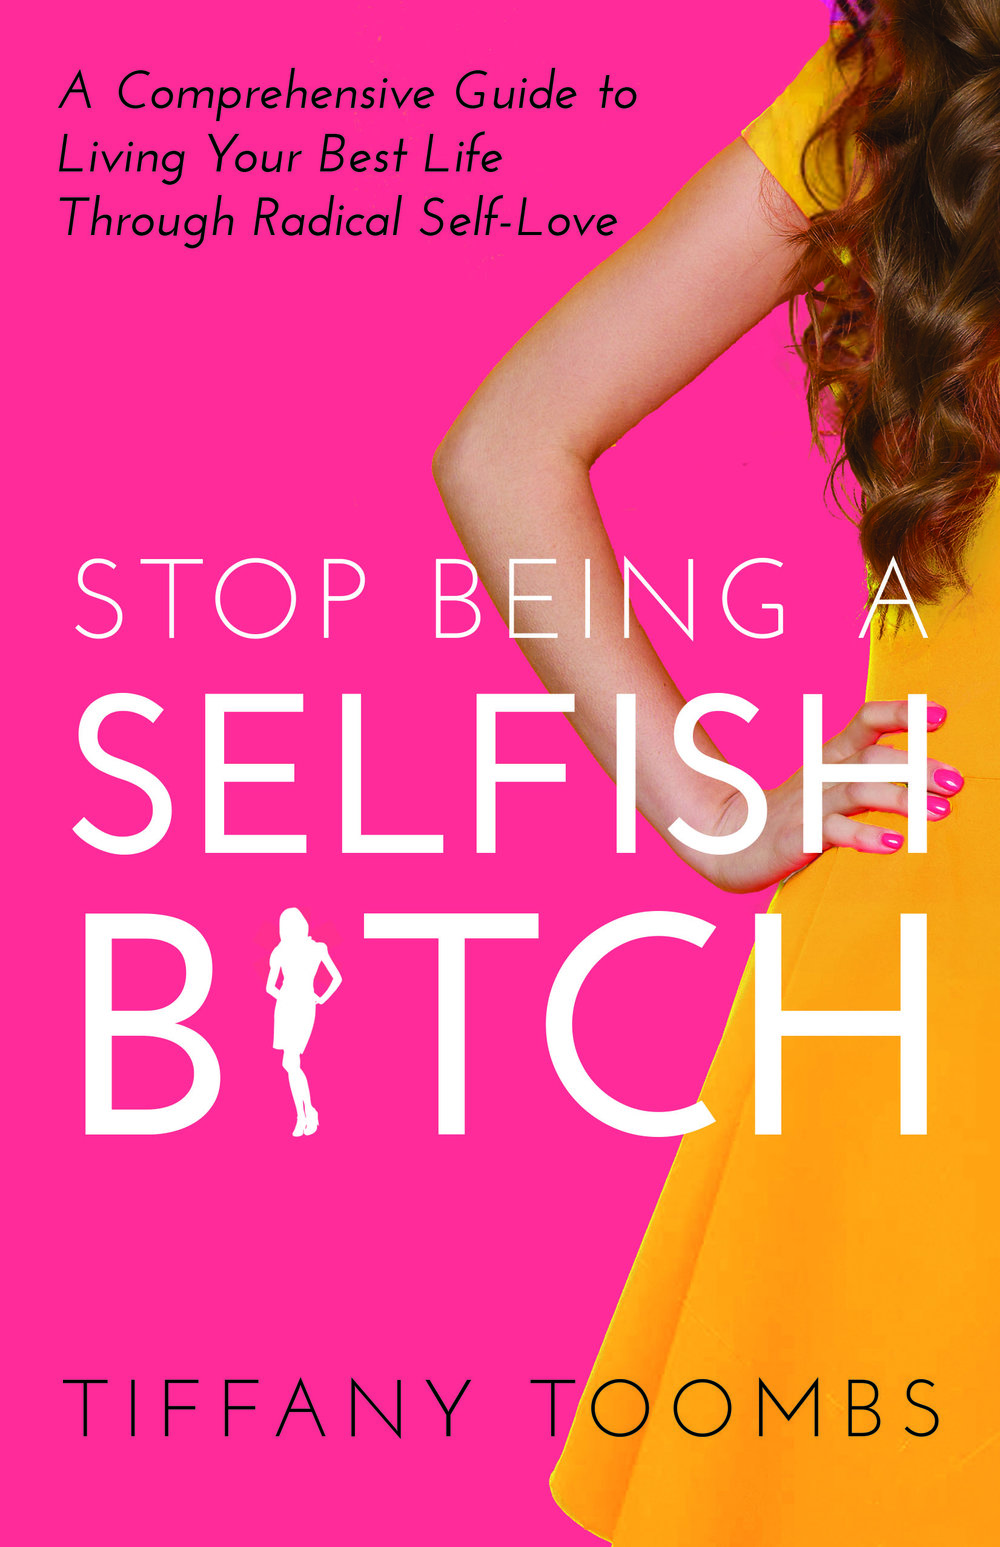 Stop Being a Selfish Btch_Front_2018-12-14.jpg